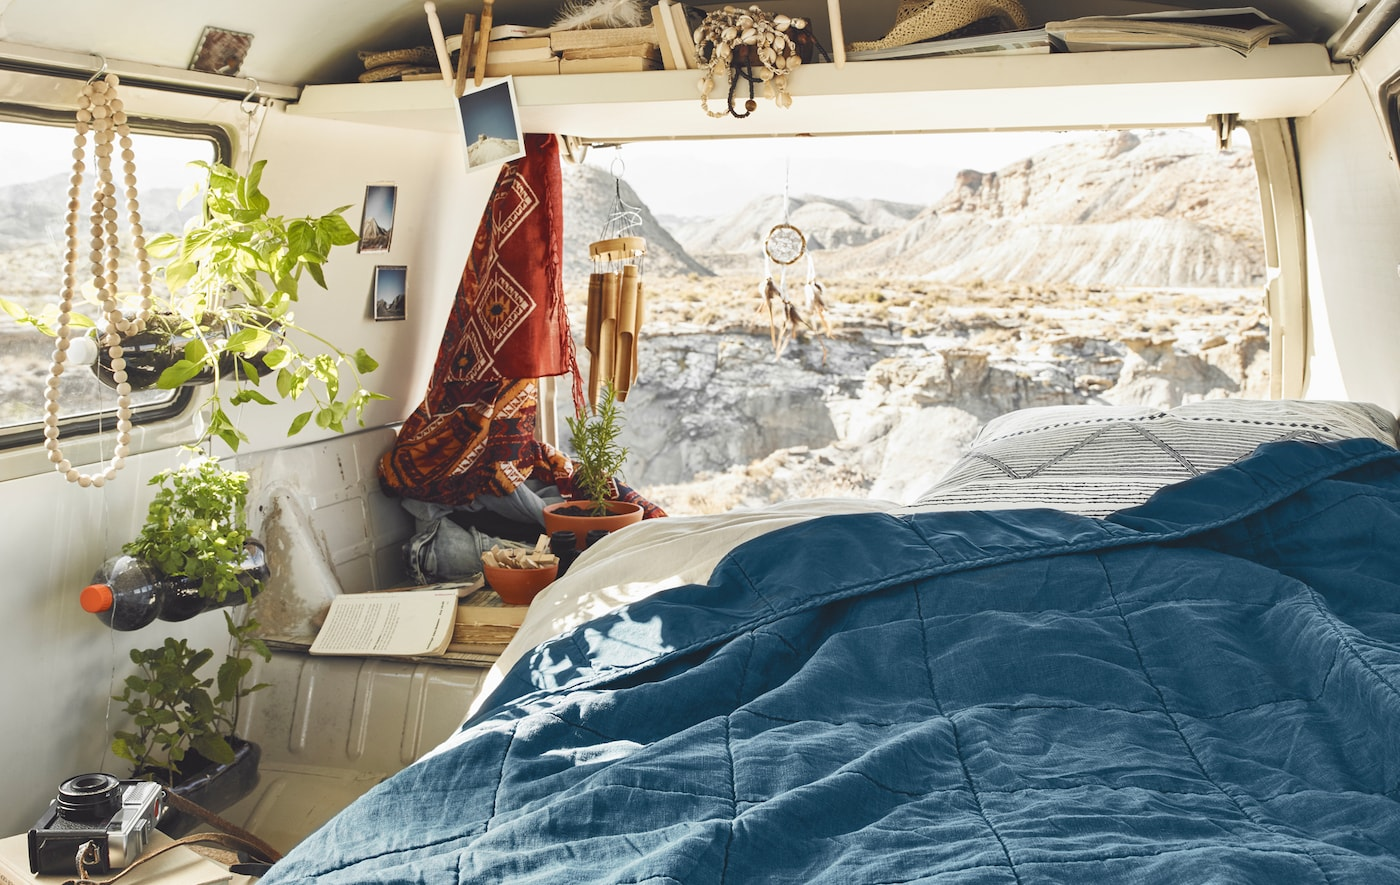 A blue bedspread in a camper van looking out onto the mountains.